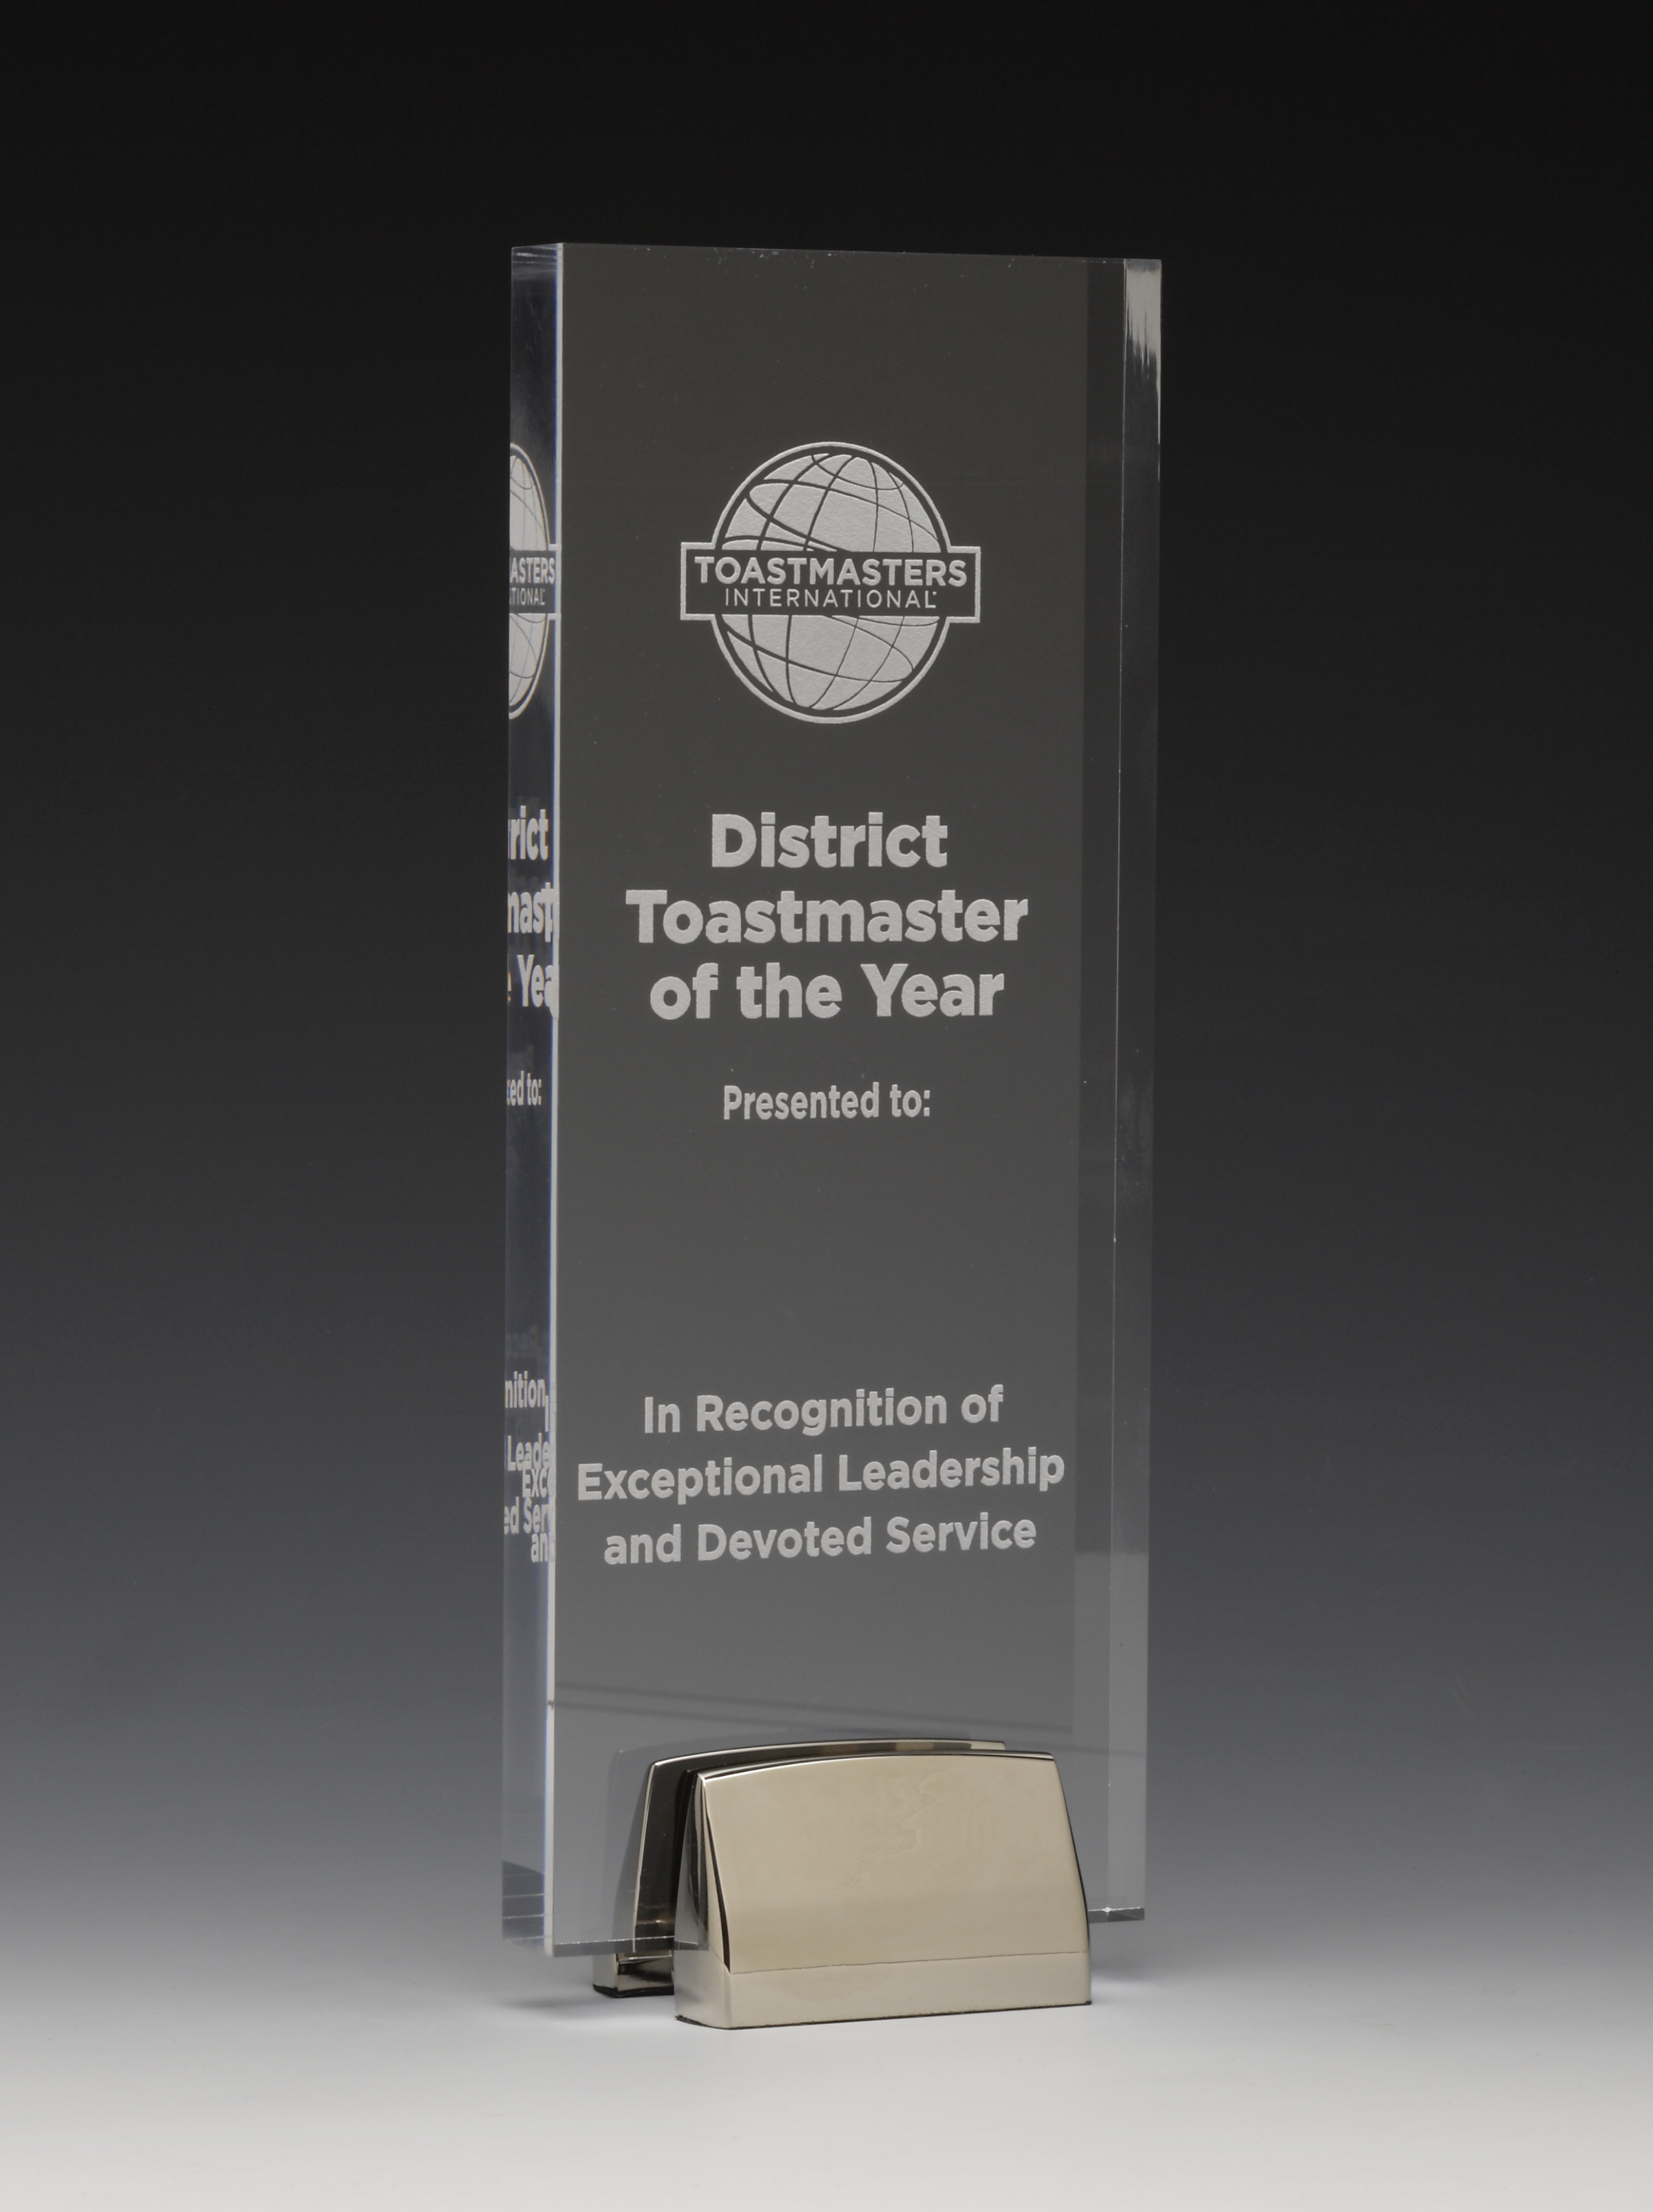 District Toastmaster of the Year Award